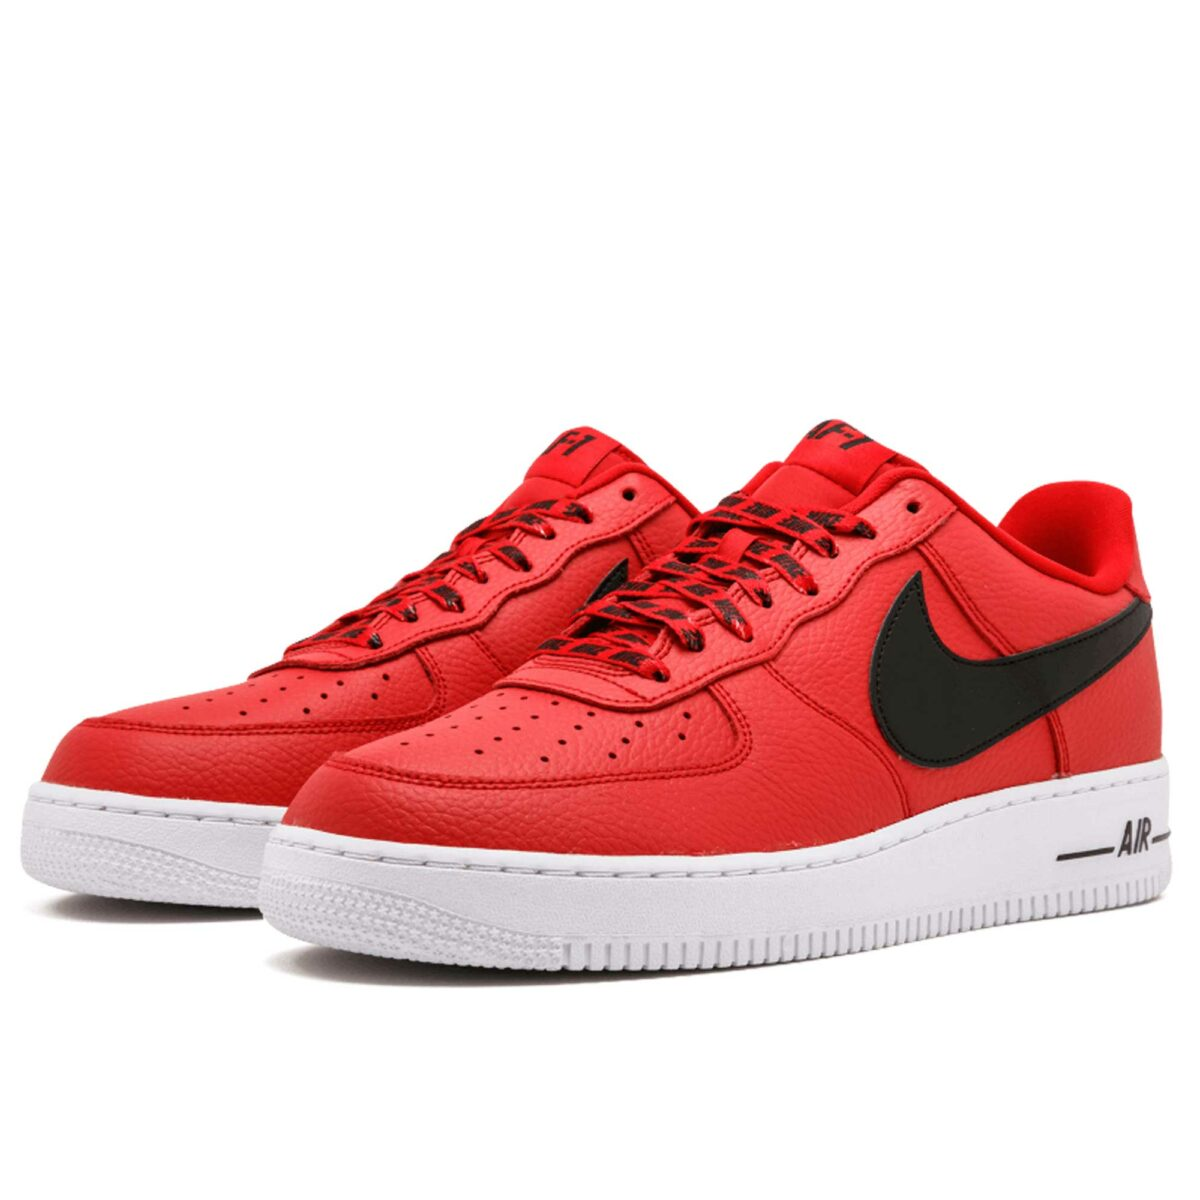 nike air force1 '07 lv8 red black 823511_604 купить